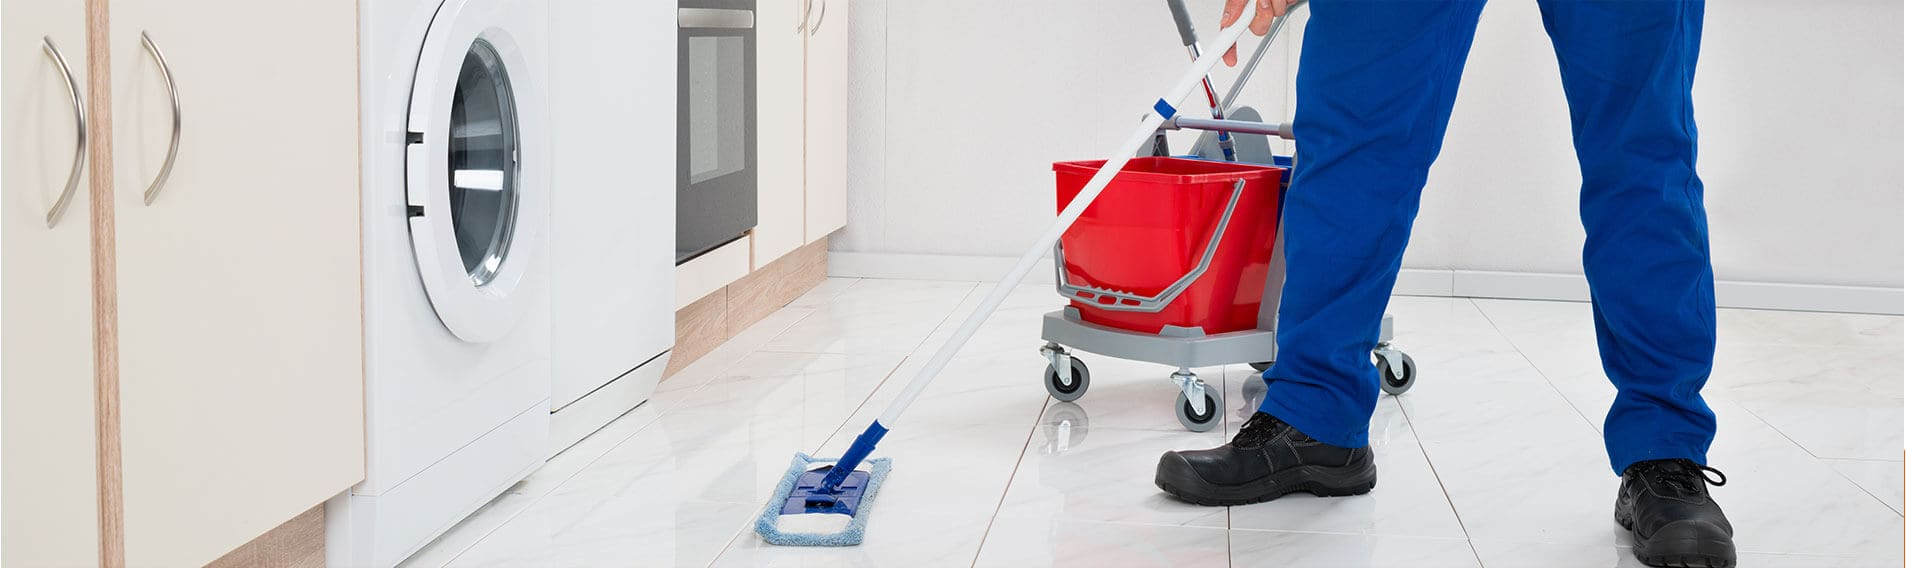 Gold coast tile cleaning parklane tile and grout cleaning parklane cleaning services has over 20 years of combined experience and has grown into one of the most respected names in the gold coast tile and grout dailygadgetfo Image collections